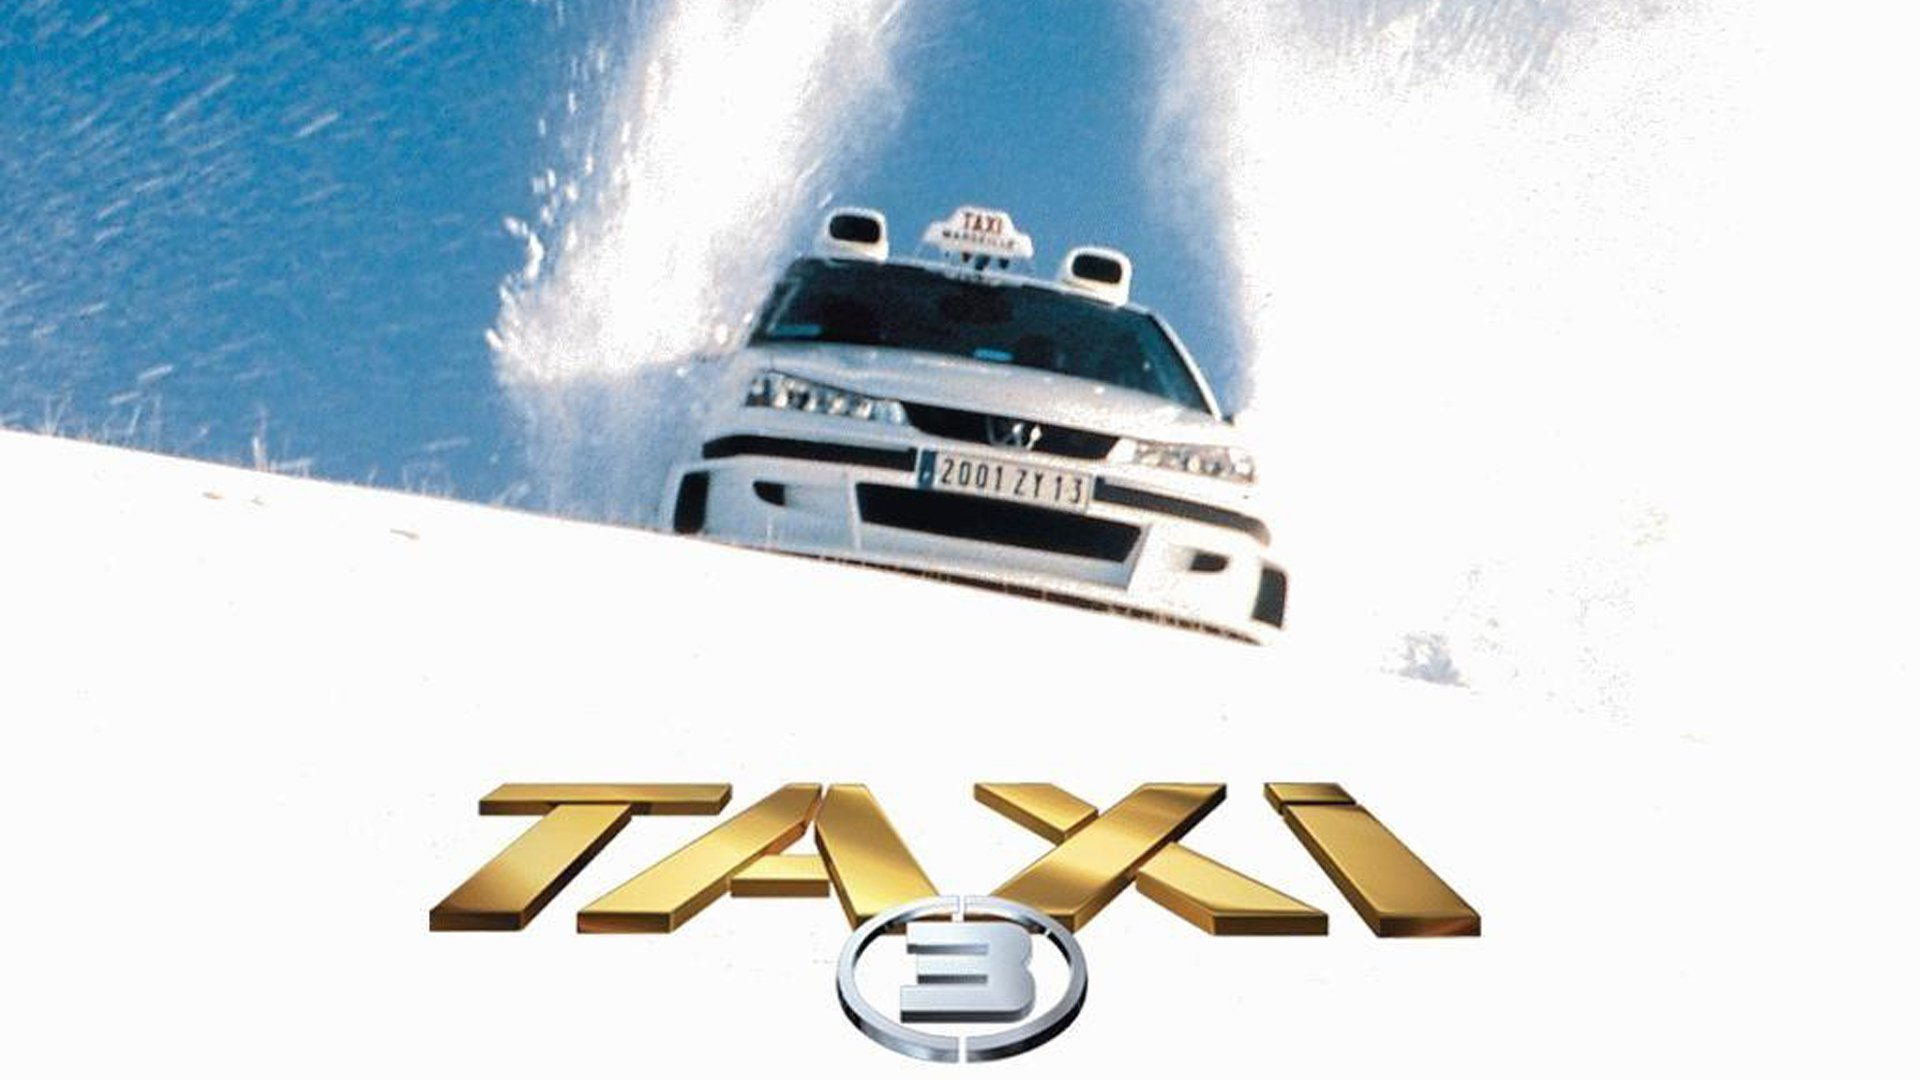 taxi 3 film 1h 30min 2003 cin s ries. Black Bedroom Furniture Sets. Home Design Ideas